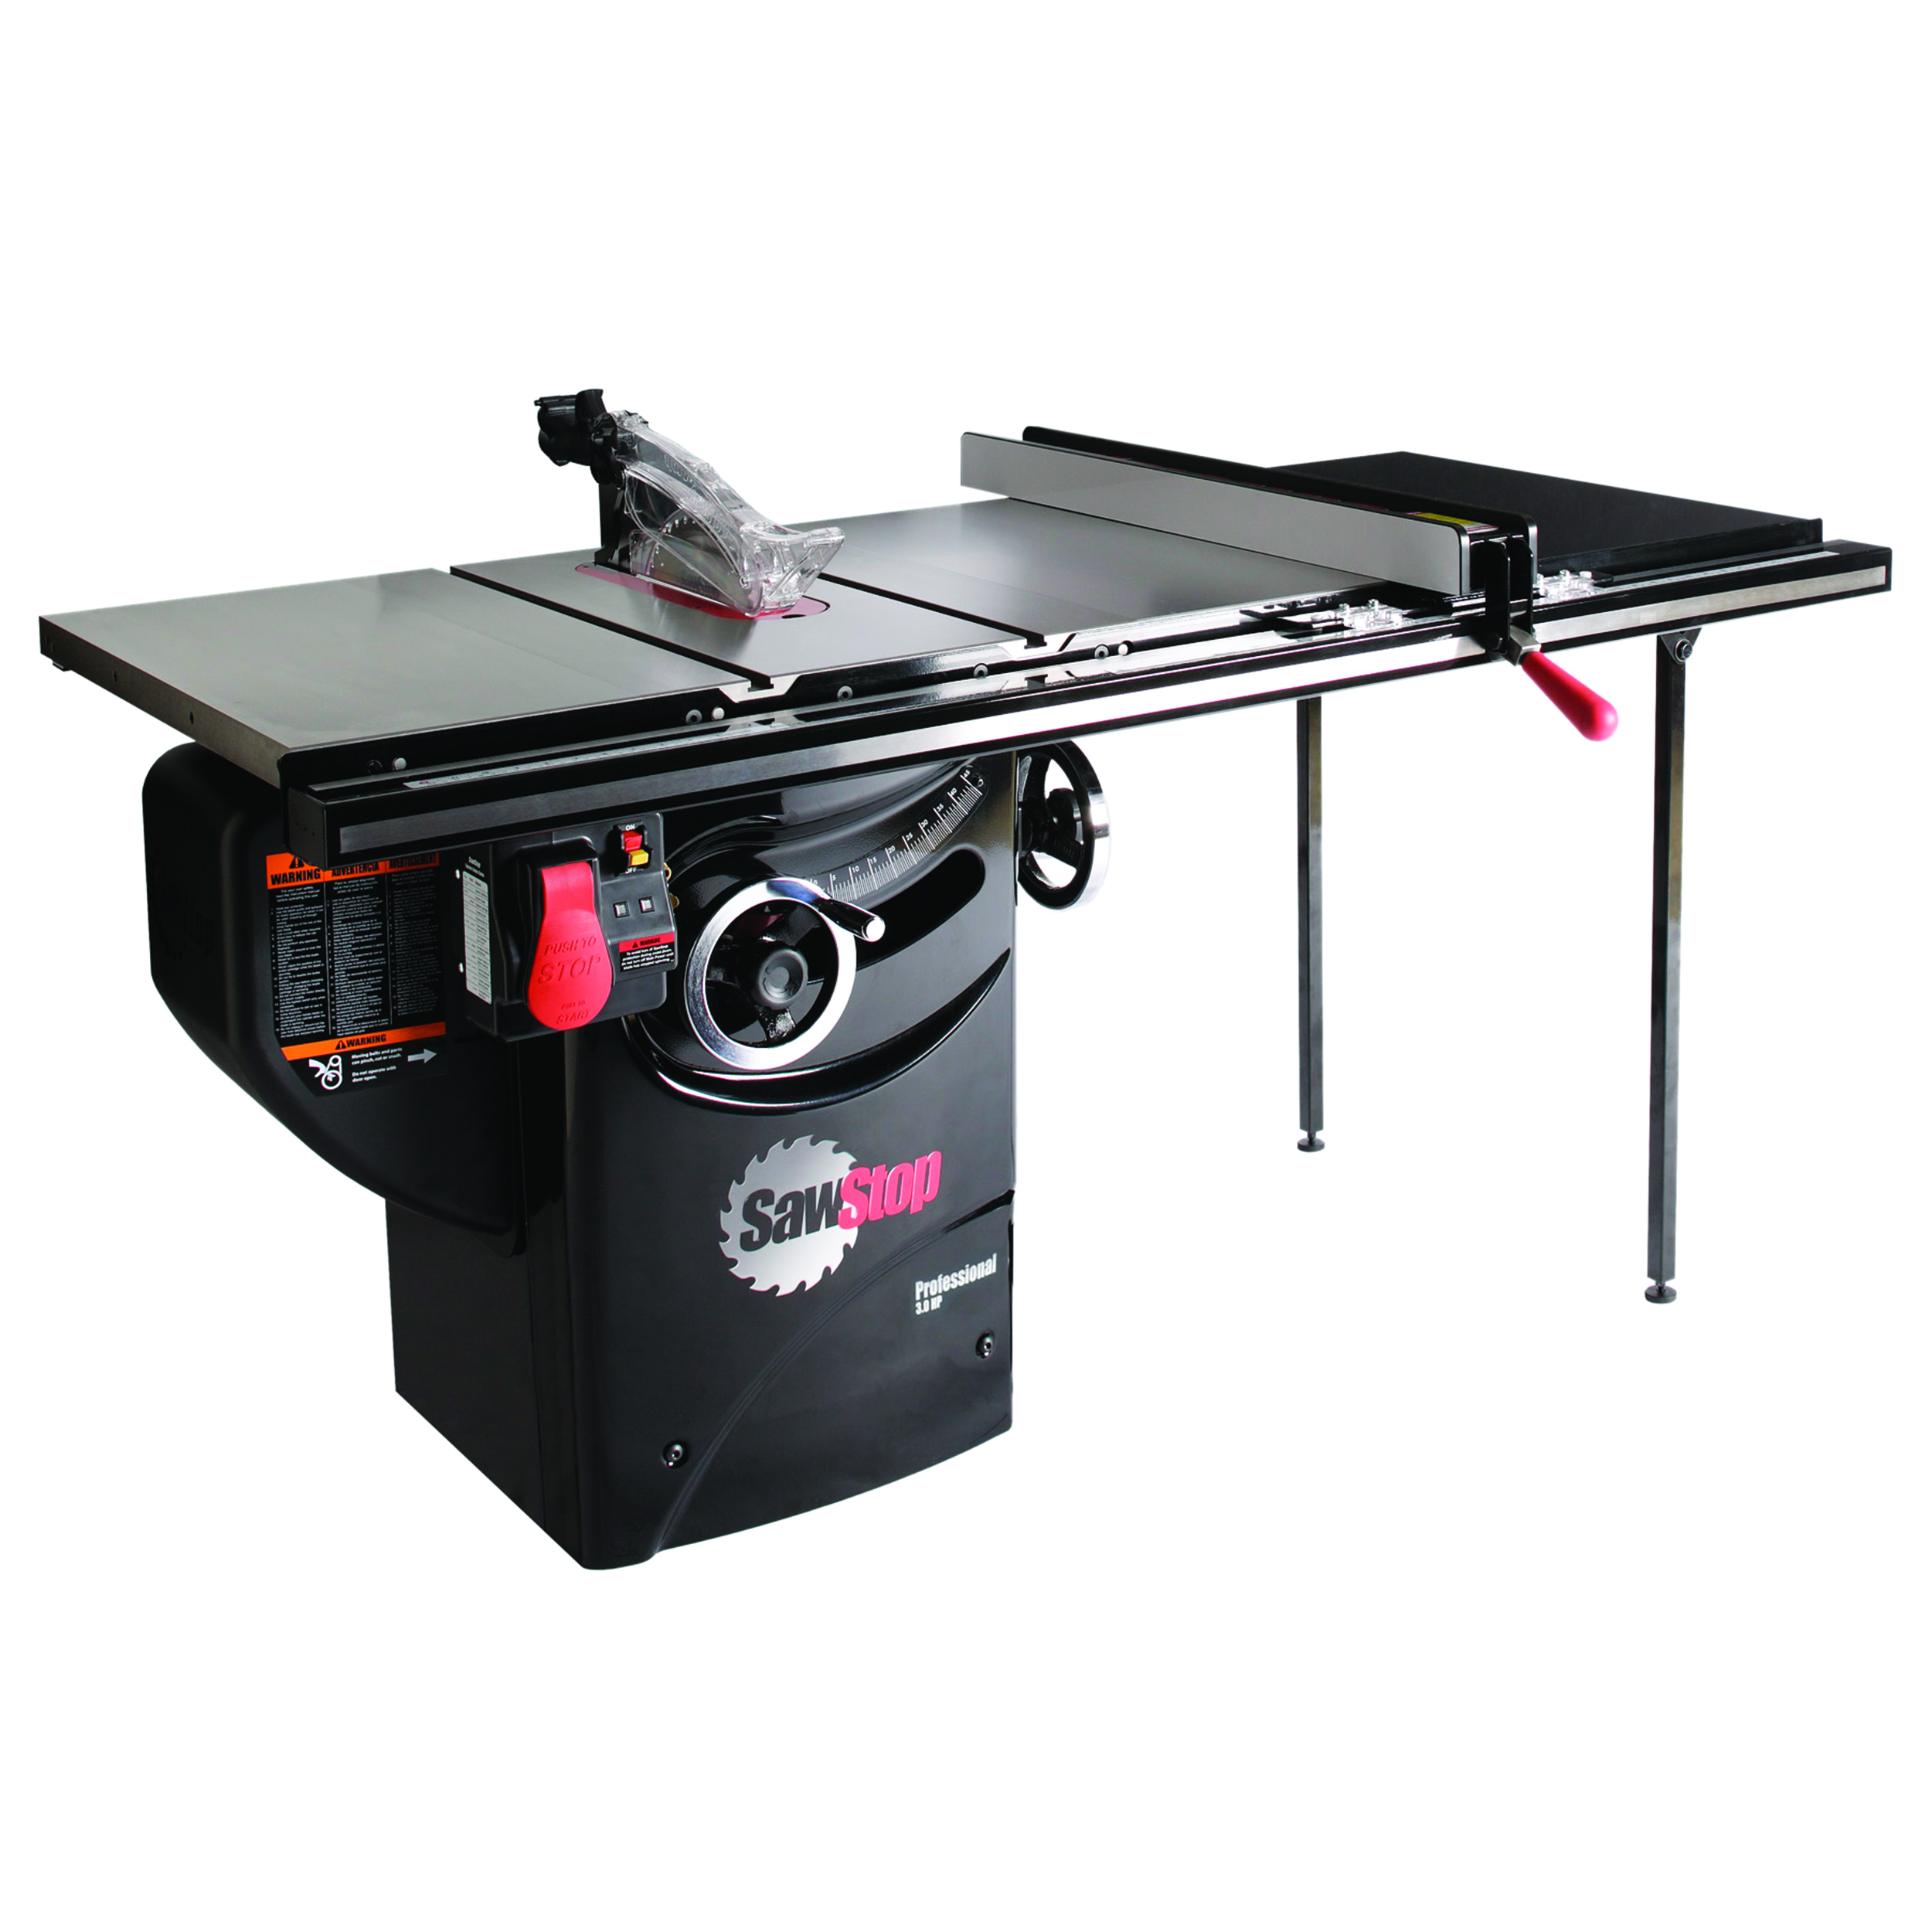 3HP 1PH 230V Professional Cabinet Saw with 36